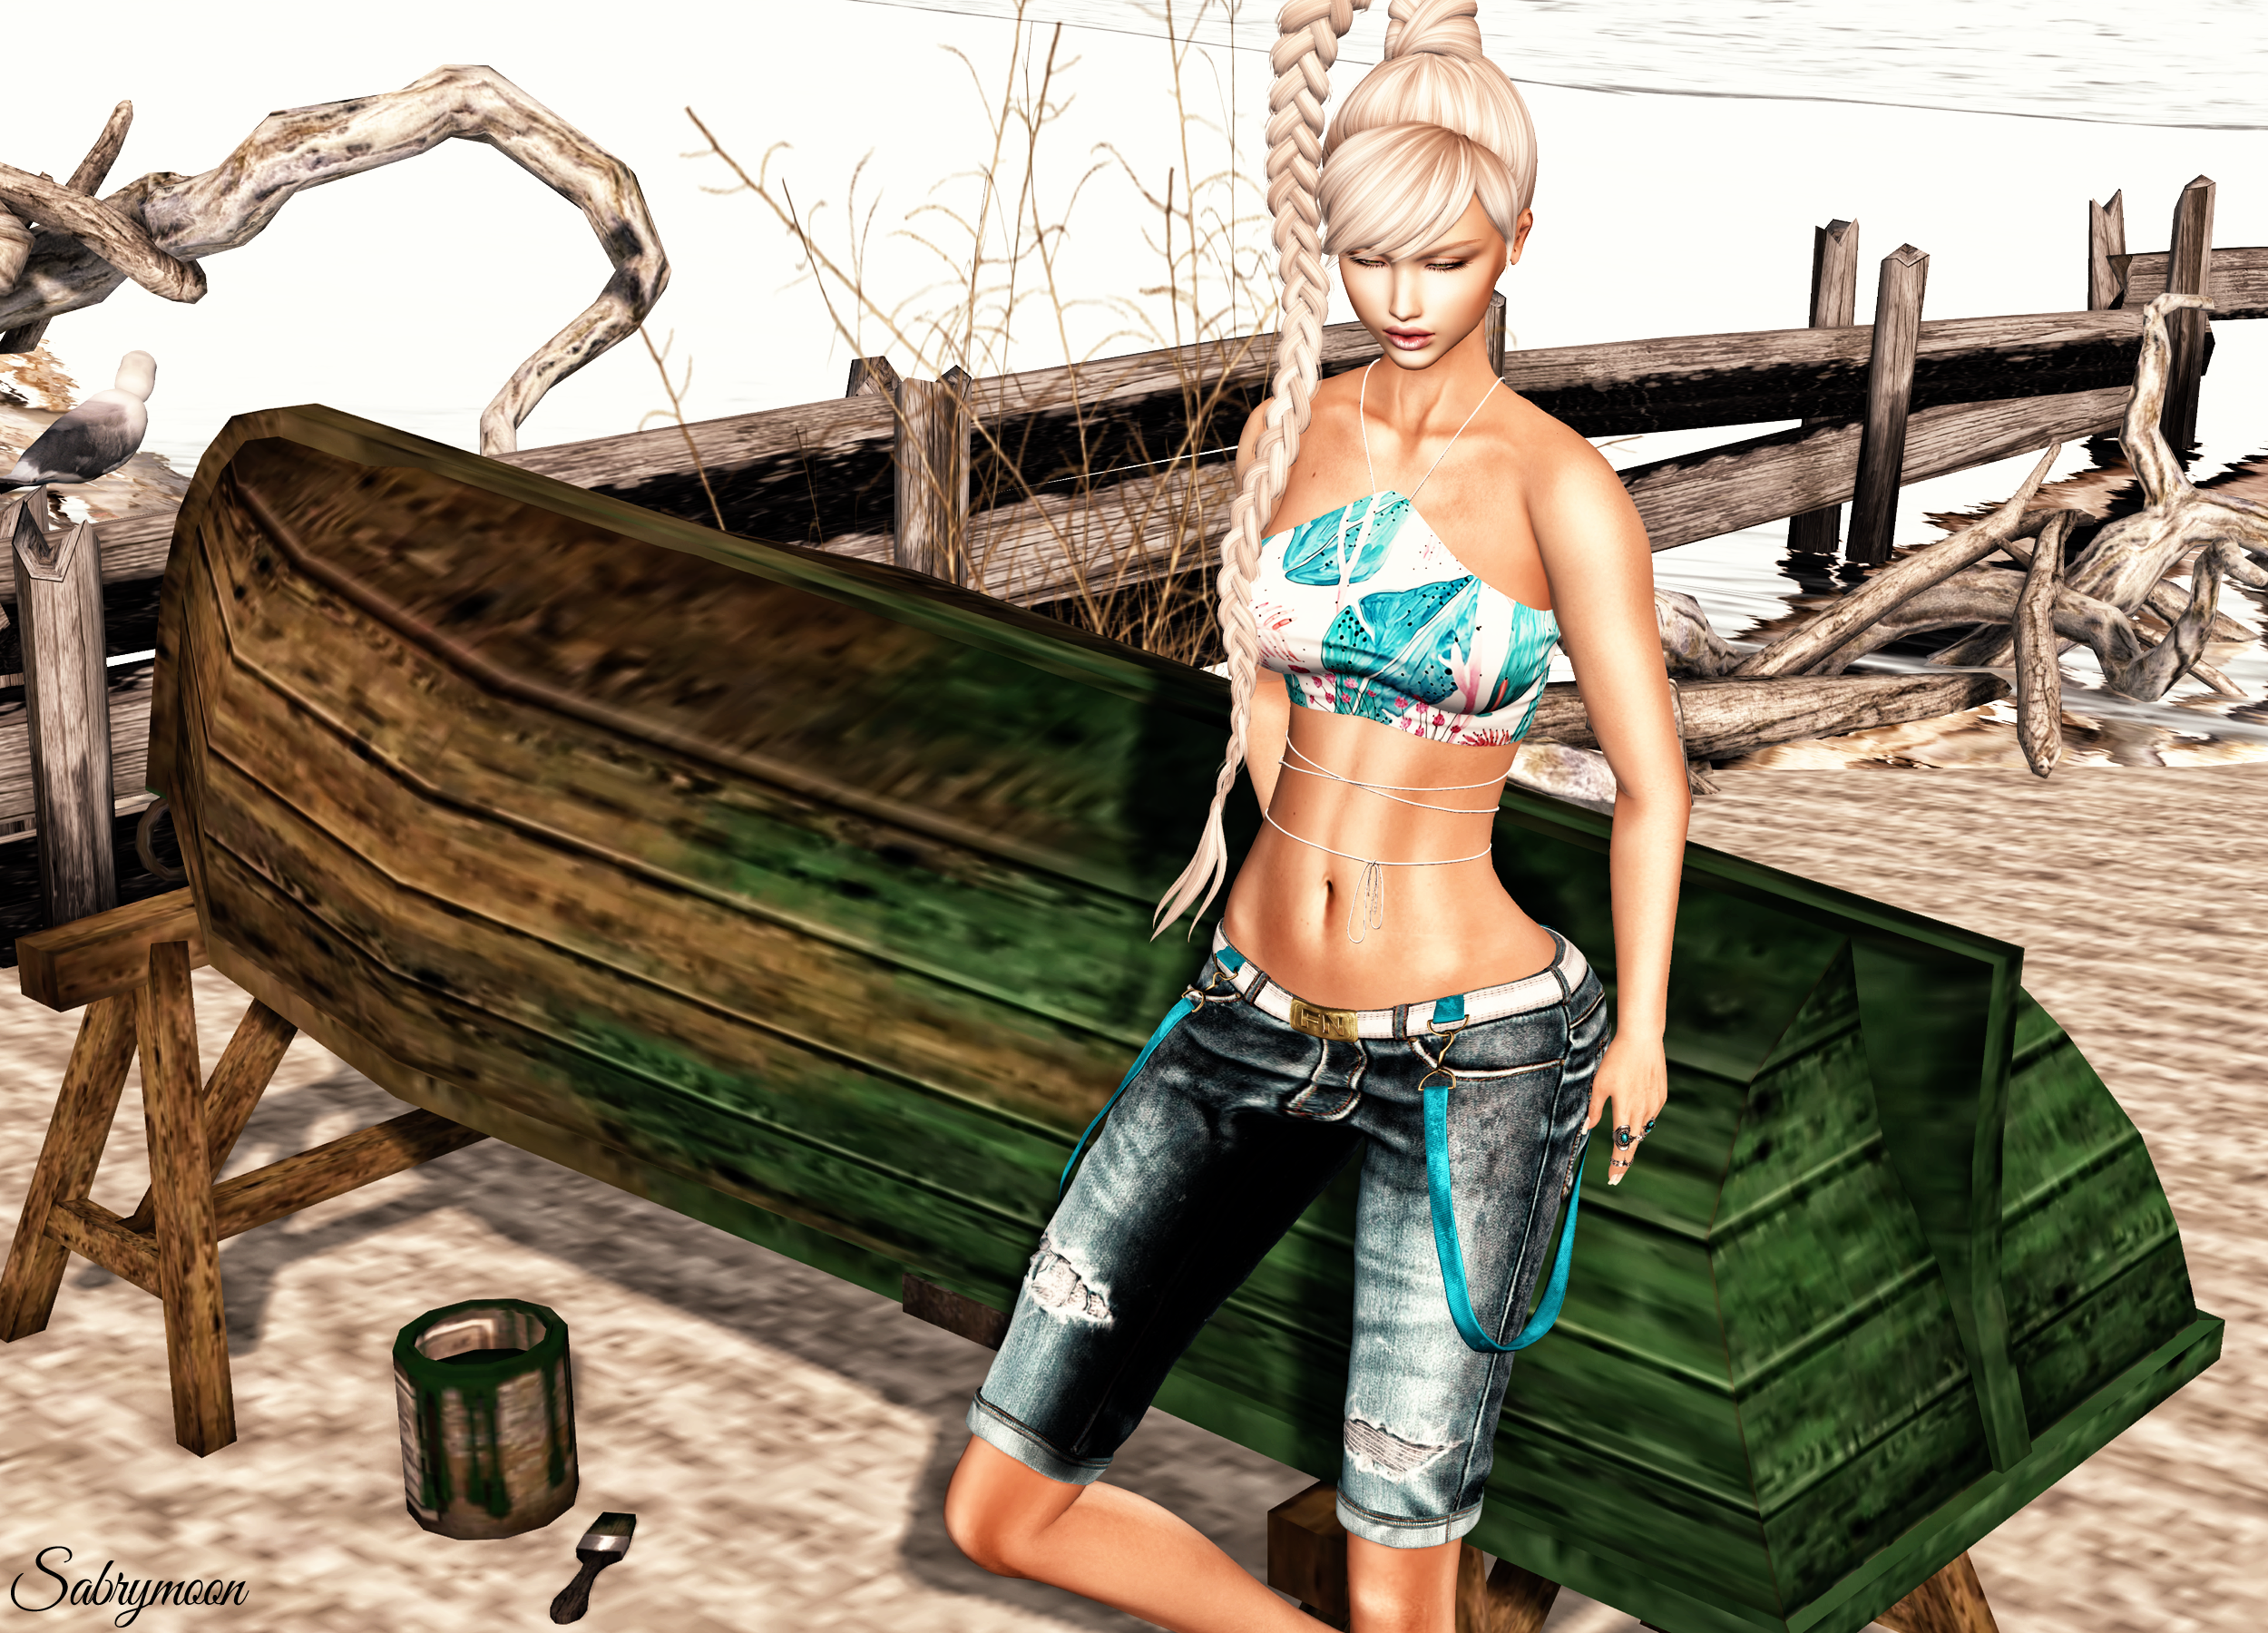 Sabrymoon wearing FashionNatic Sahana Shorts Jeans Aleutia Sorchie Top Prints @ On9 LW: Poses Summer loving Boat @ Tres Chic